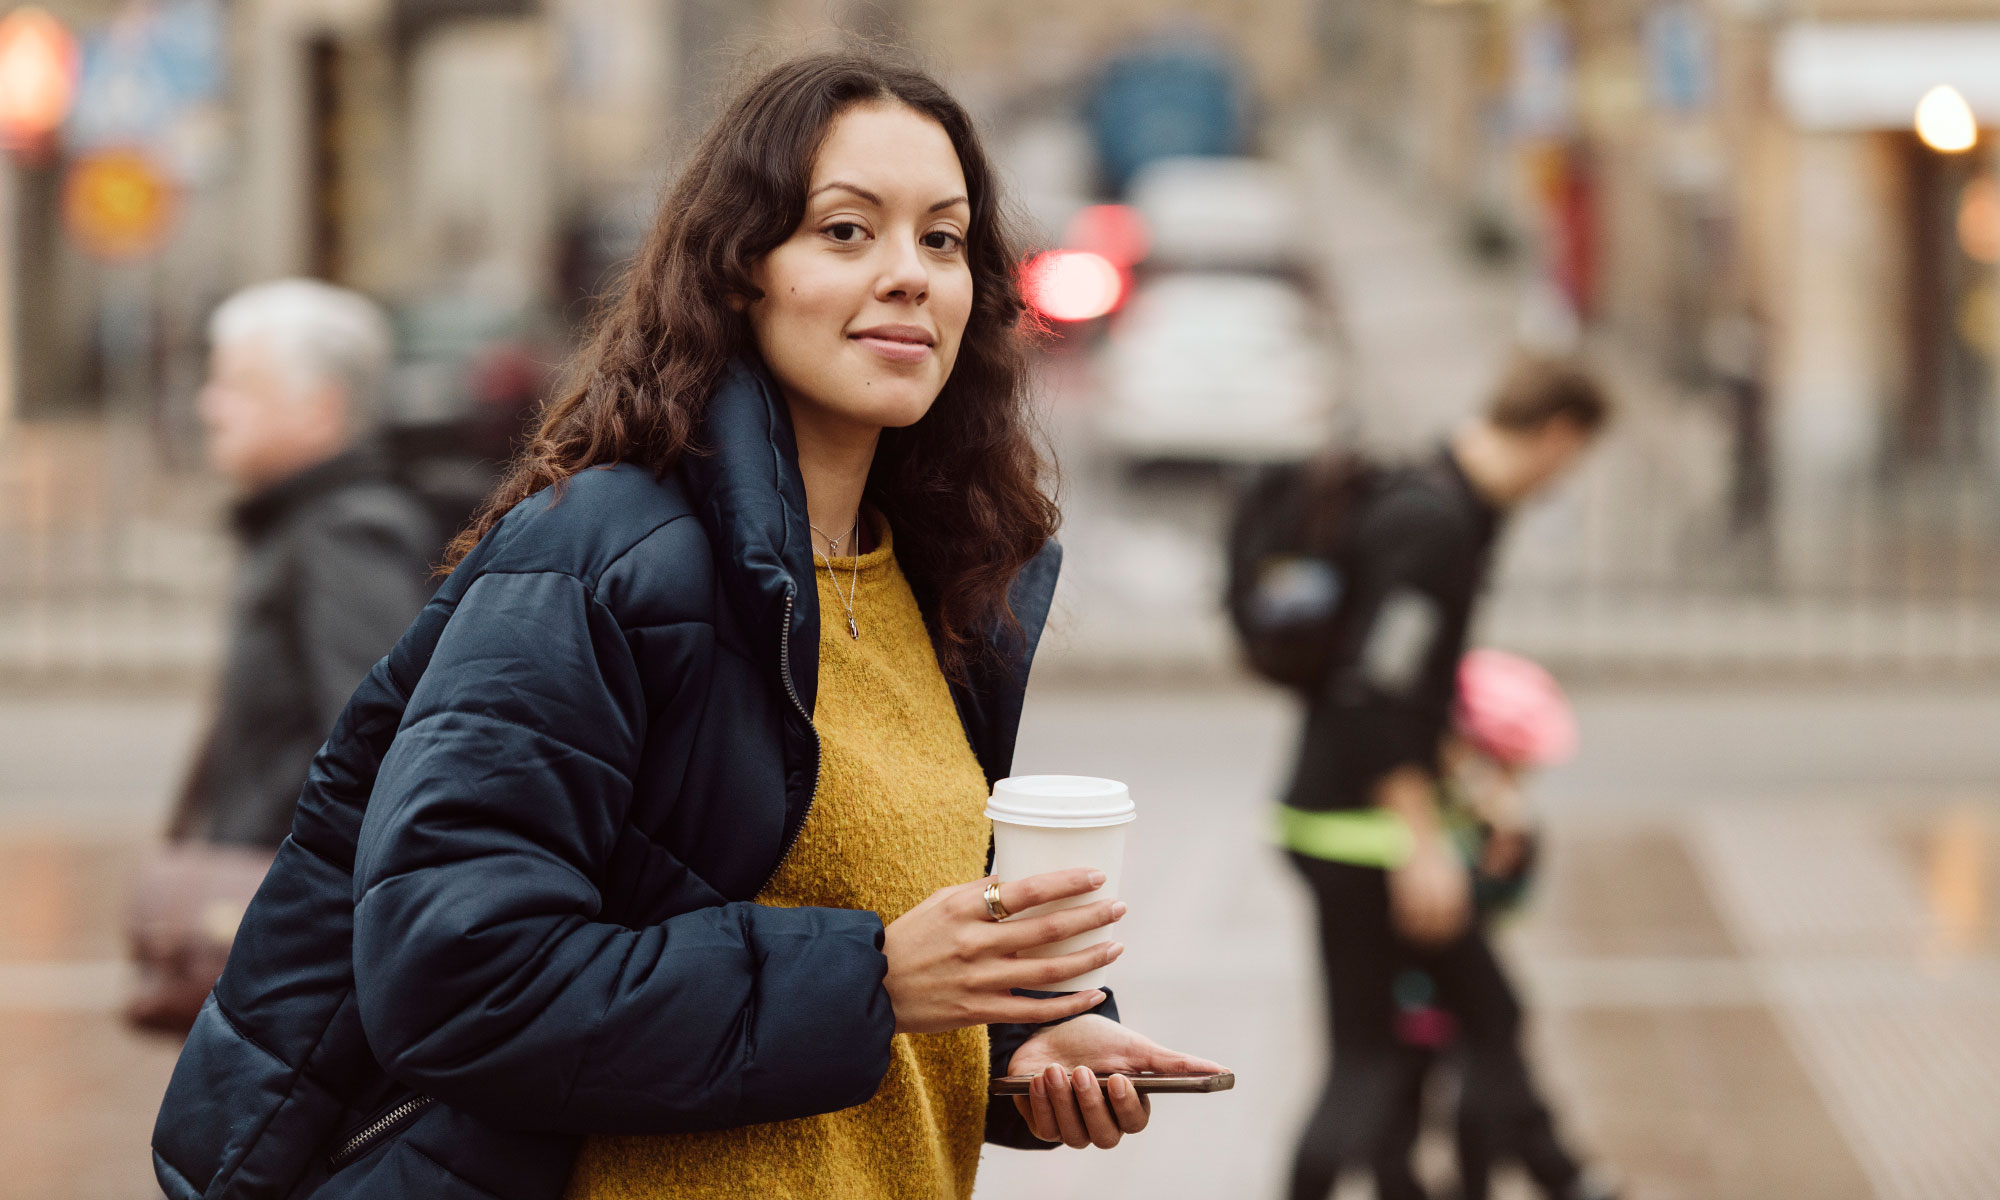 Woman in the city holding a coffee mug.